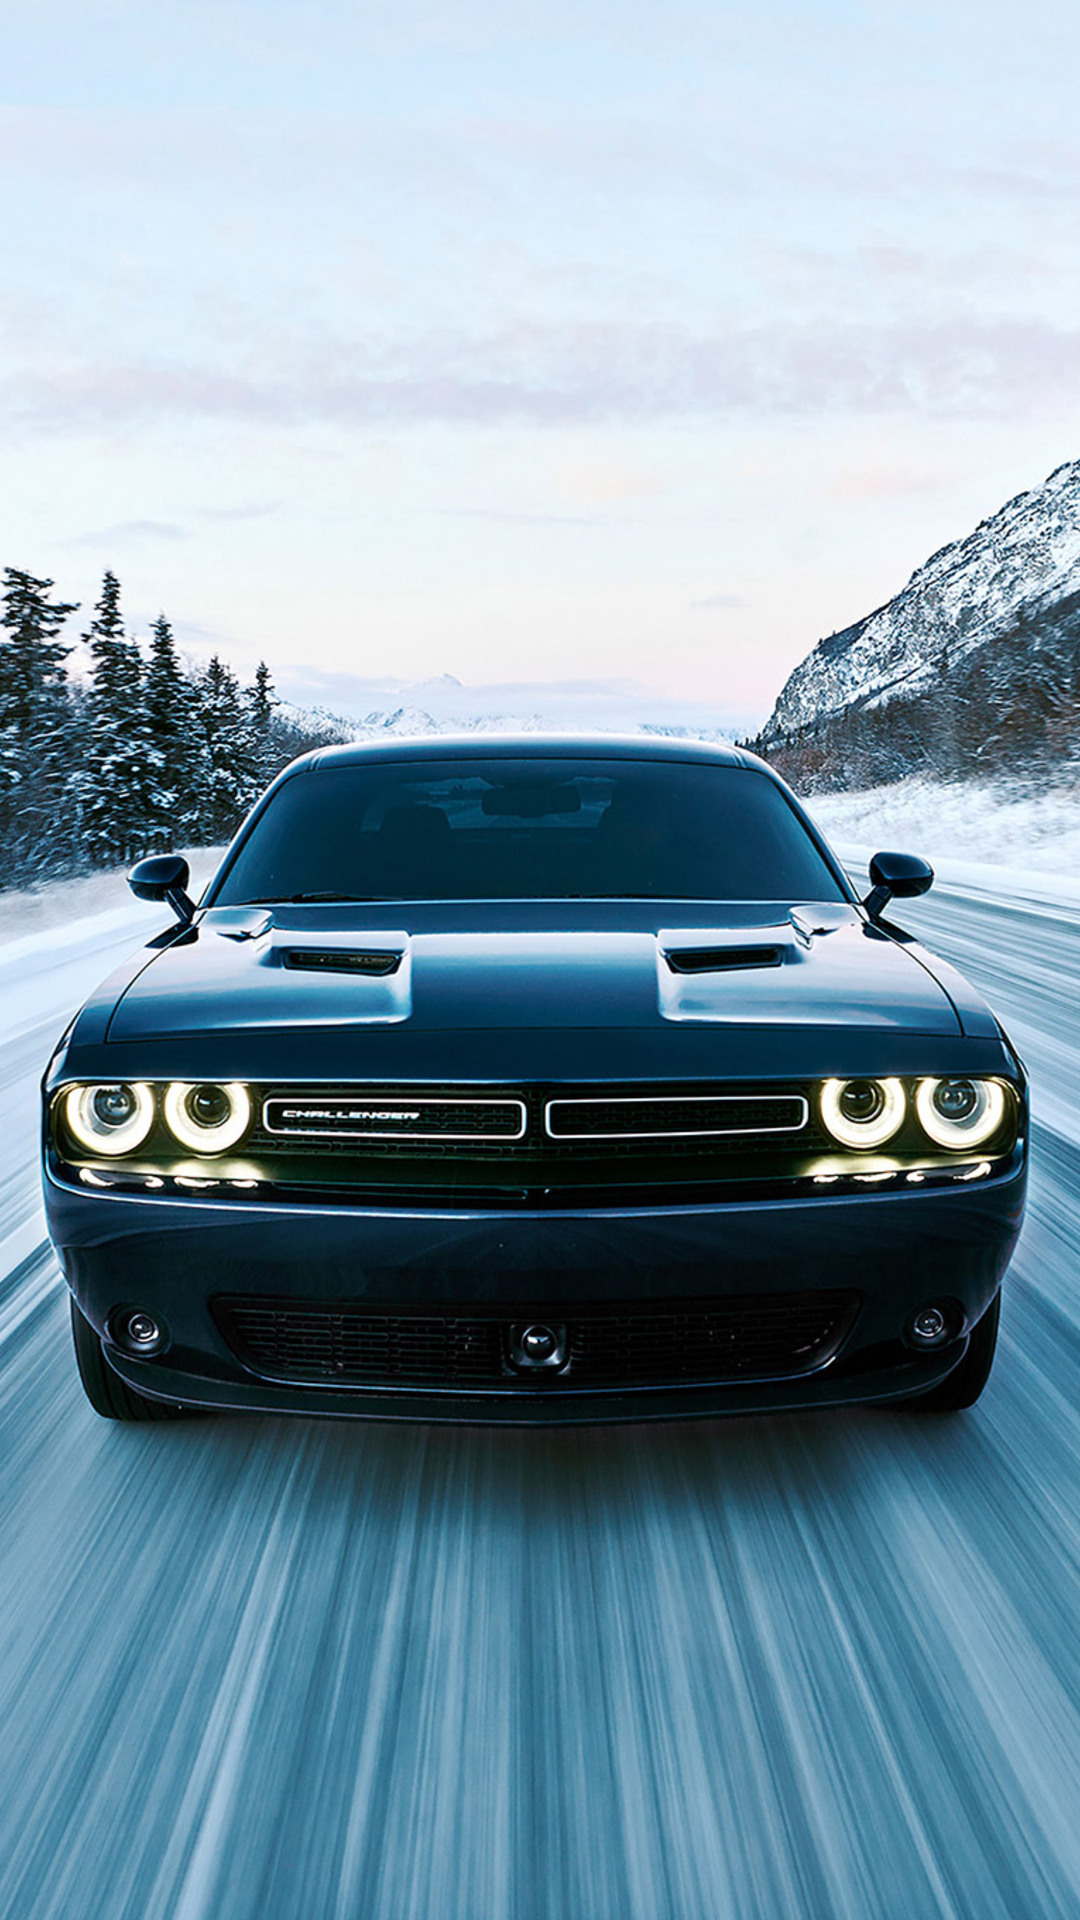 1080x1920 dodge challenger gt awd 2017 iphone 7 6s 6 plus. Black Bedroom Furniture Sets. Home Design Ideas